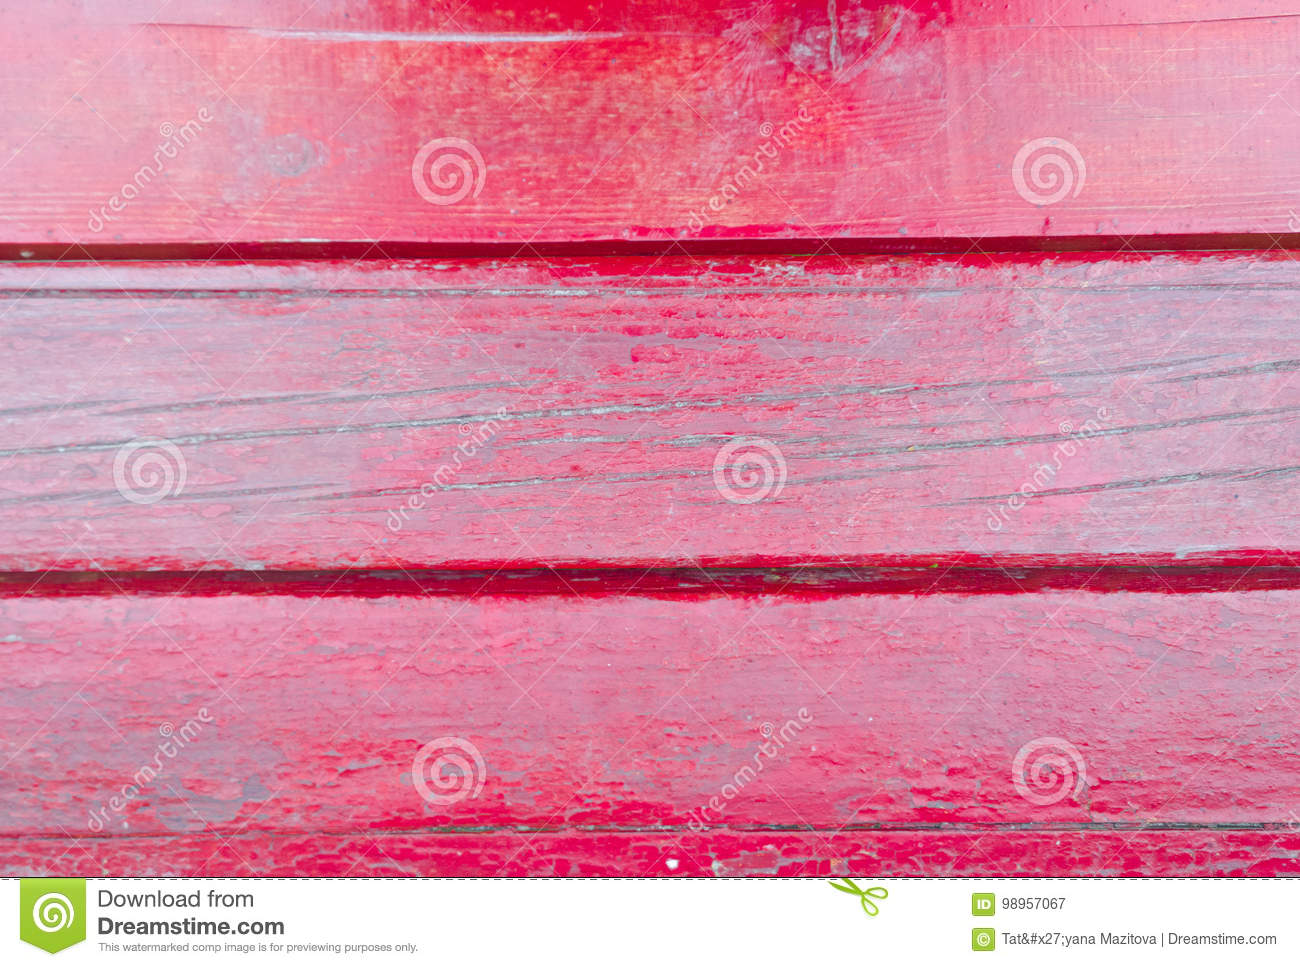 Old red wood planks texture. Tree background. Batten